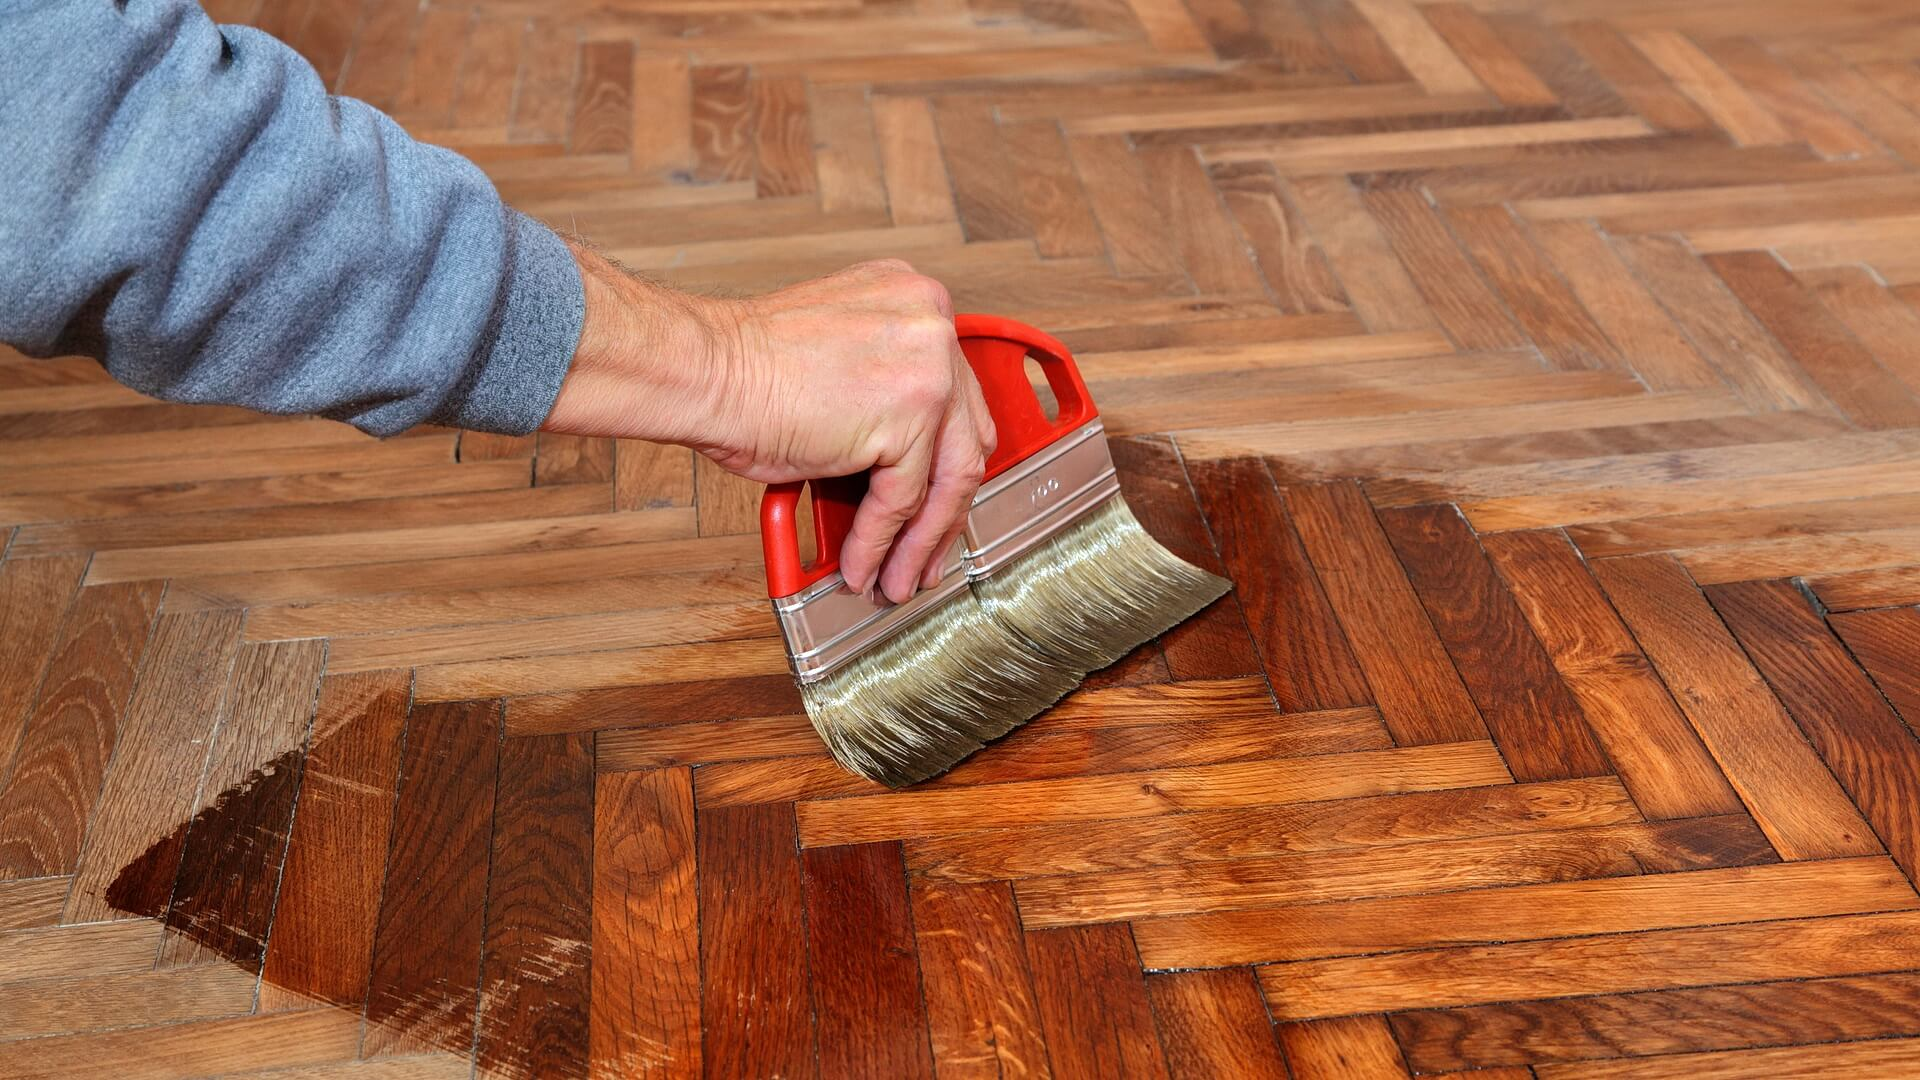 Should you Refinish or Replace Hardwood Floor